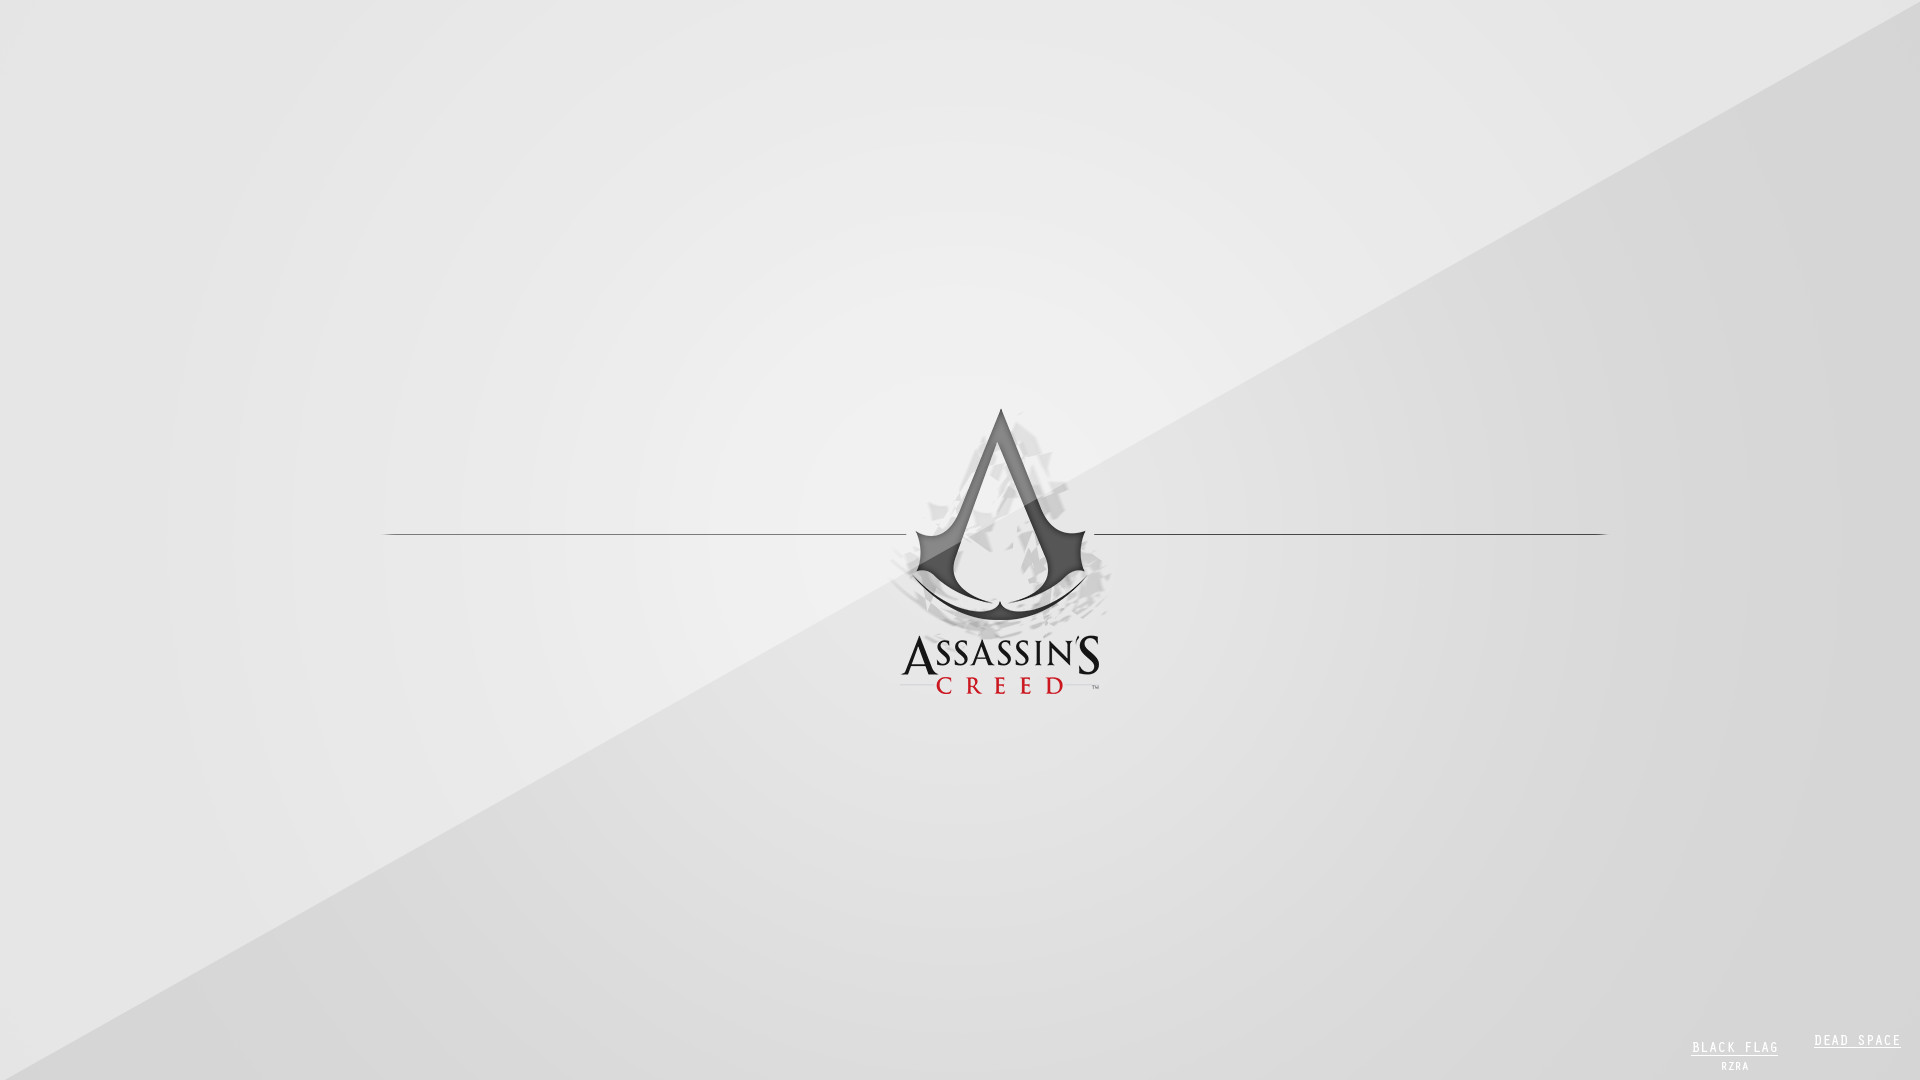 … Assassin's Creed Black Flag Wallpaper by Rzra